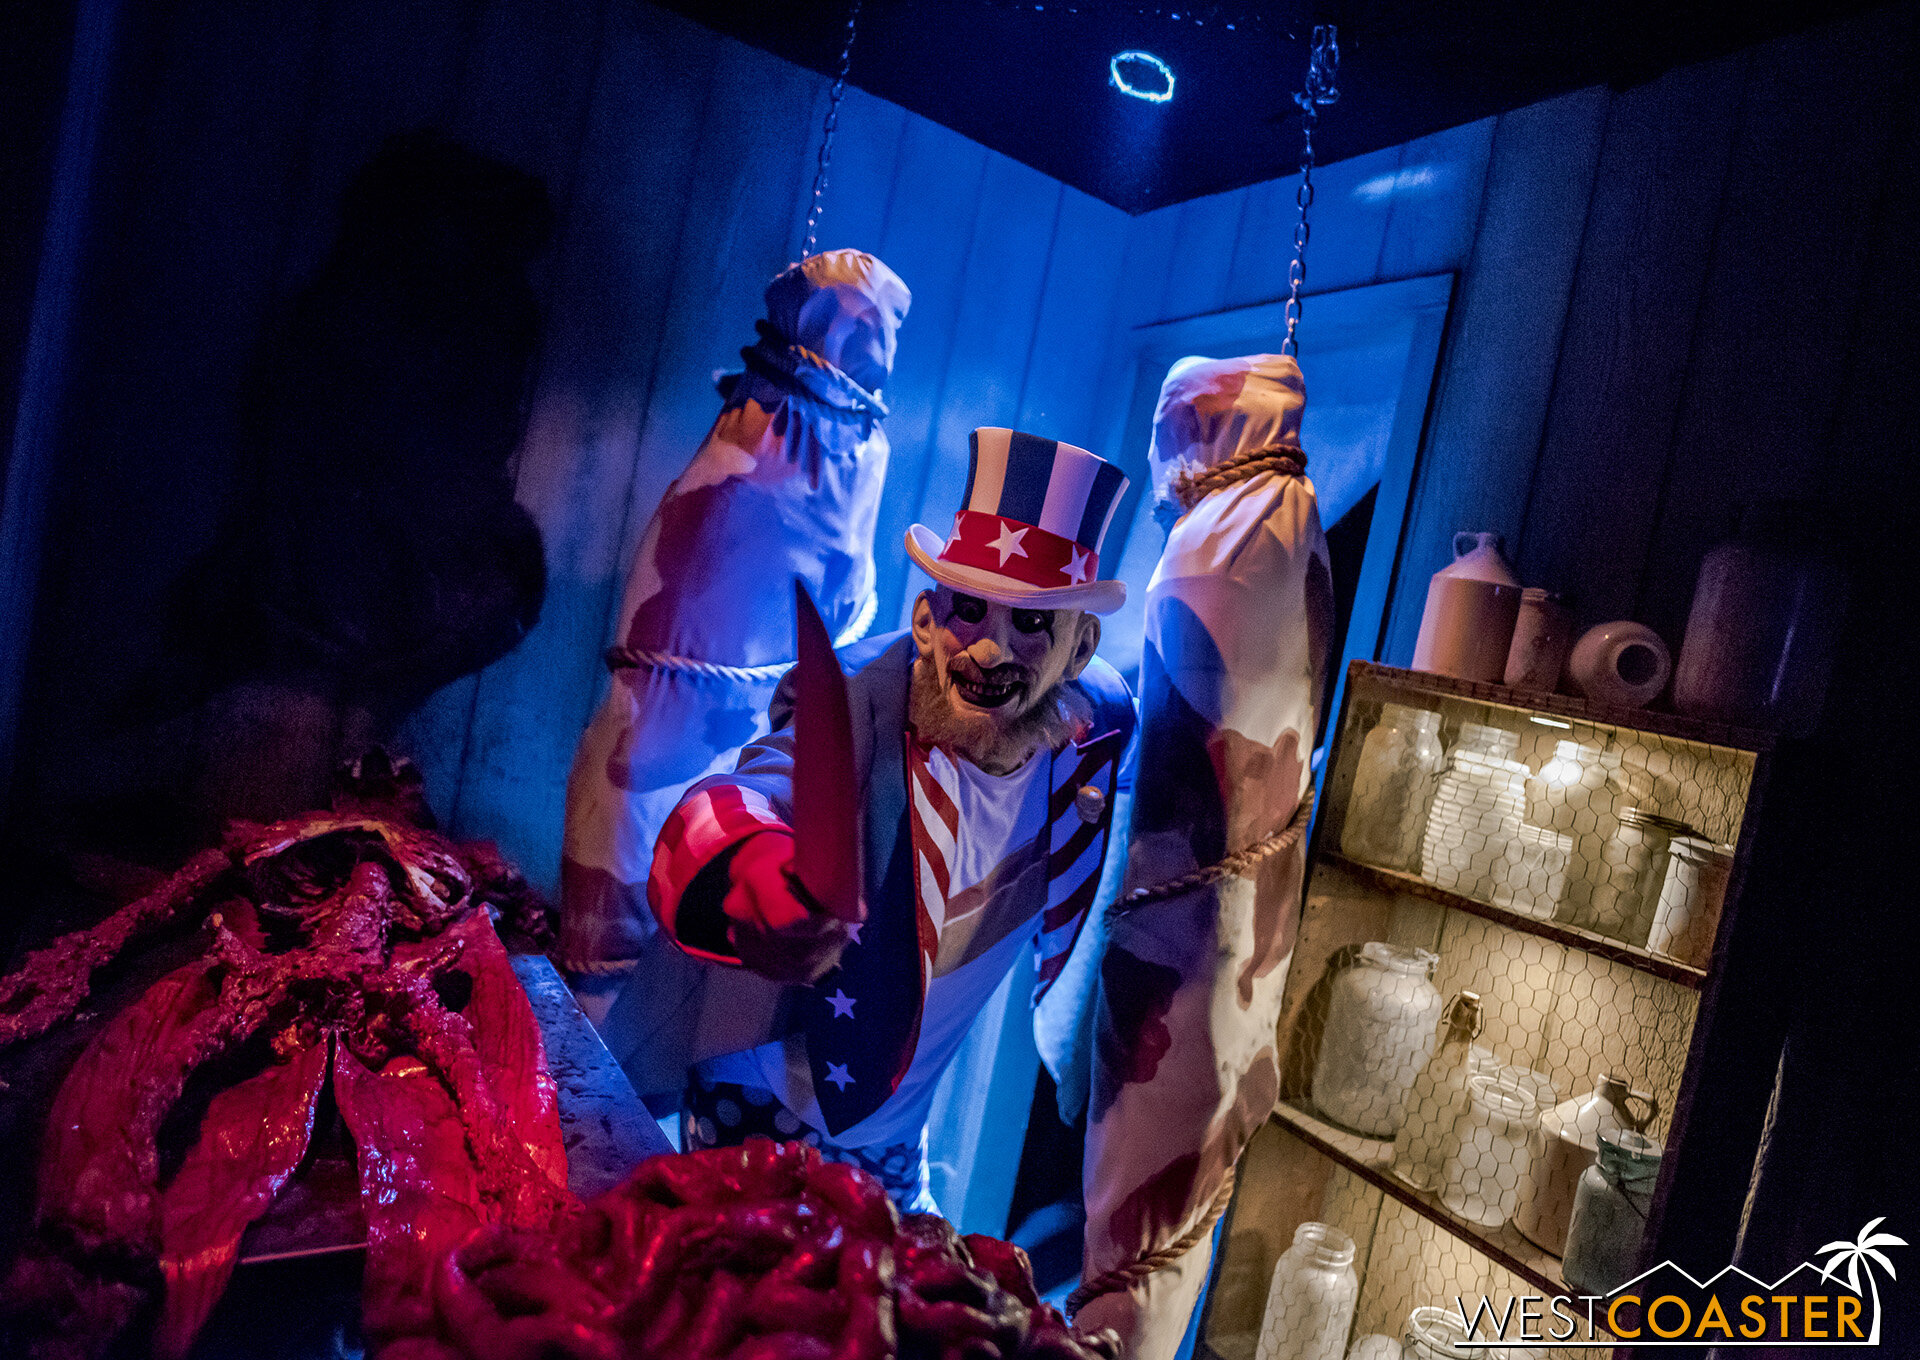 Captain Spaulding is back in this year's House of 1000 Corpse maze!